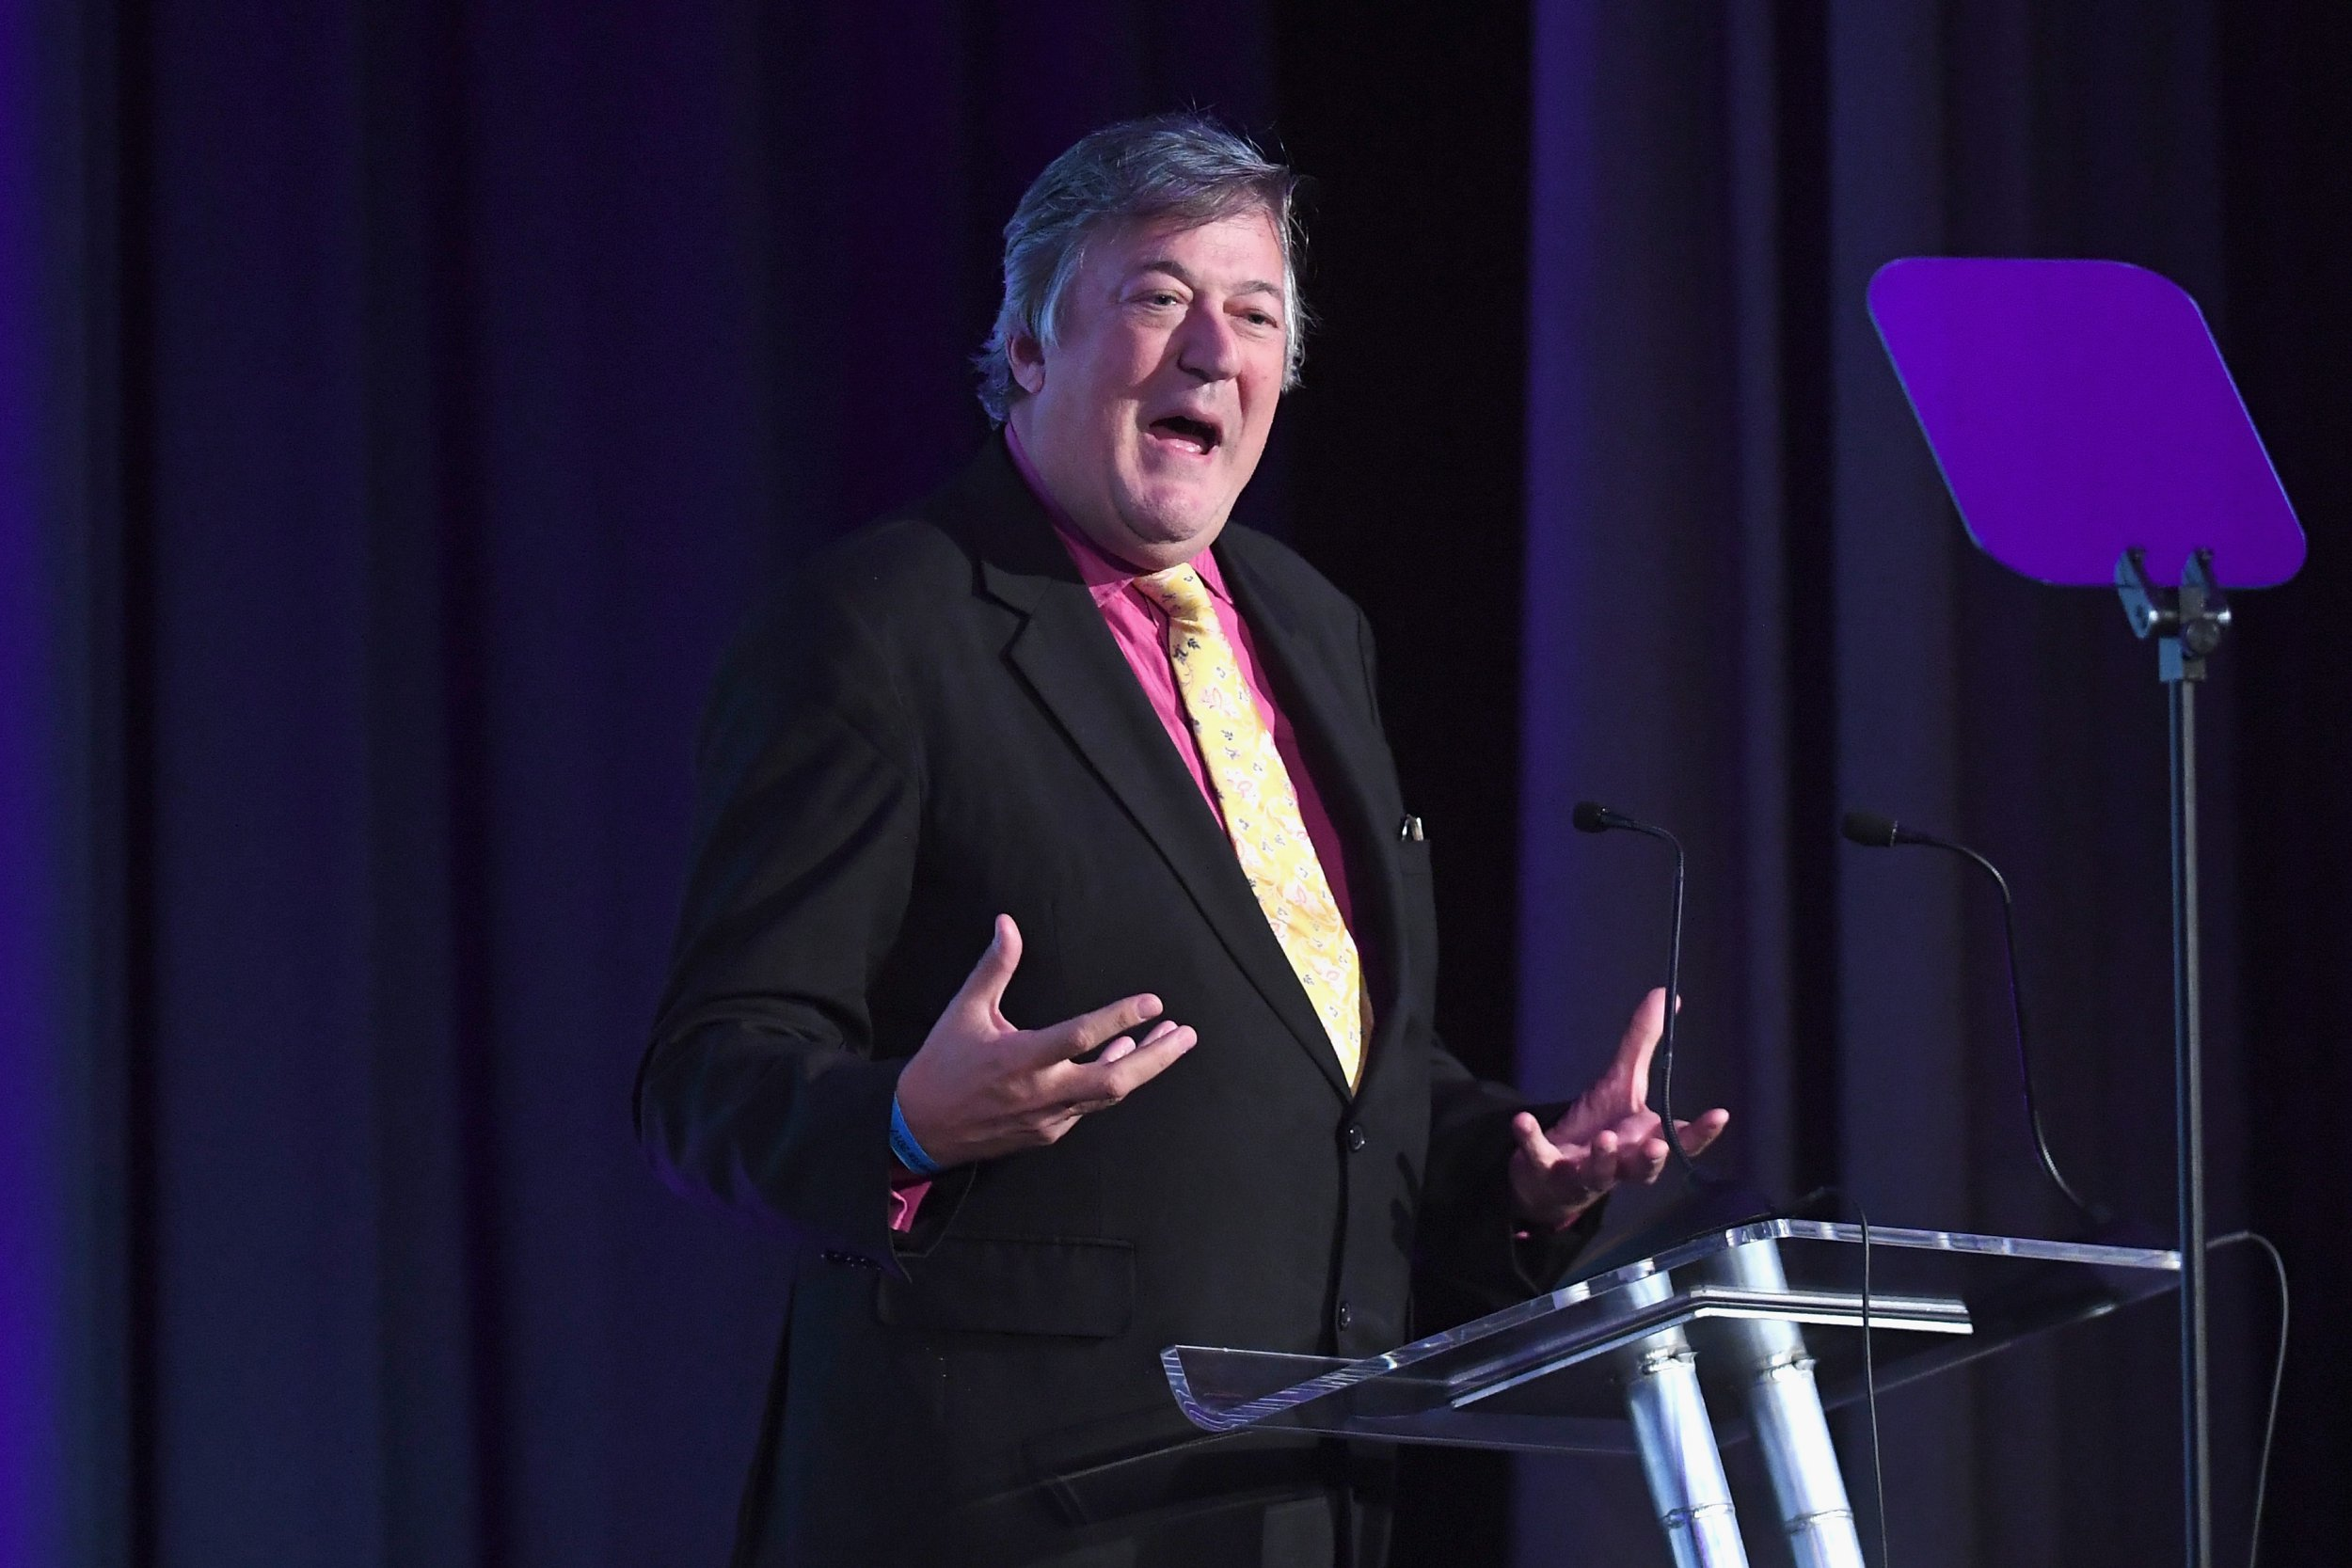 Stephen Fry urges 'men of a certain age' to have their prostates checked as he reveals cancer battle